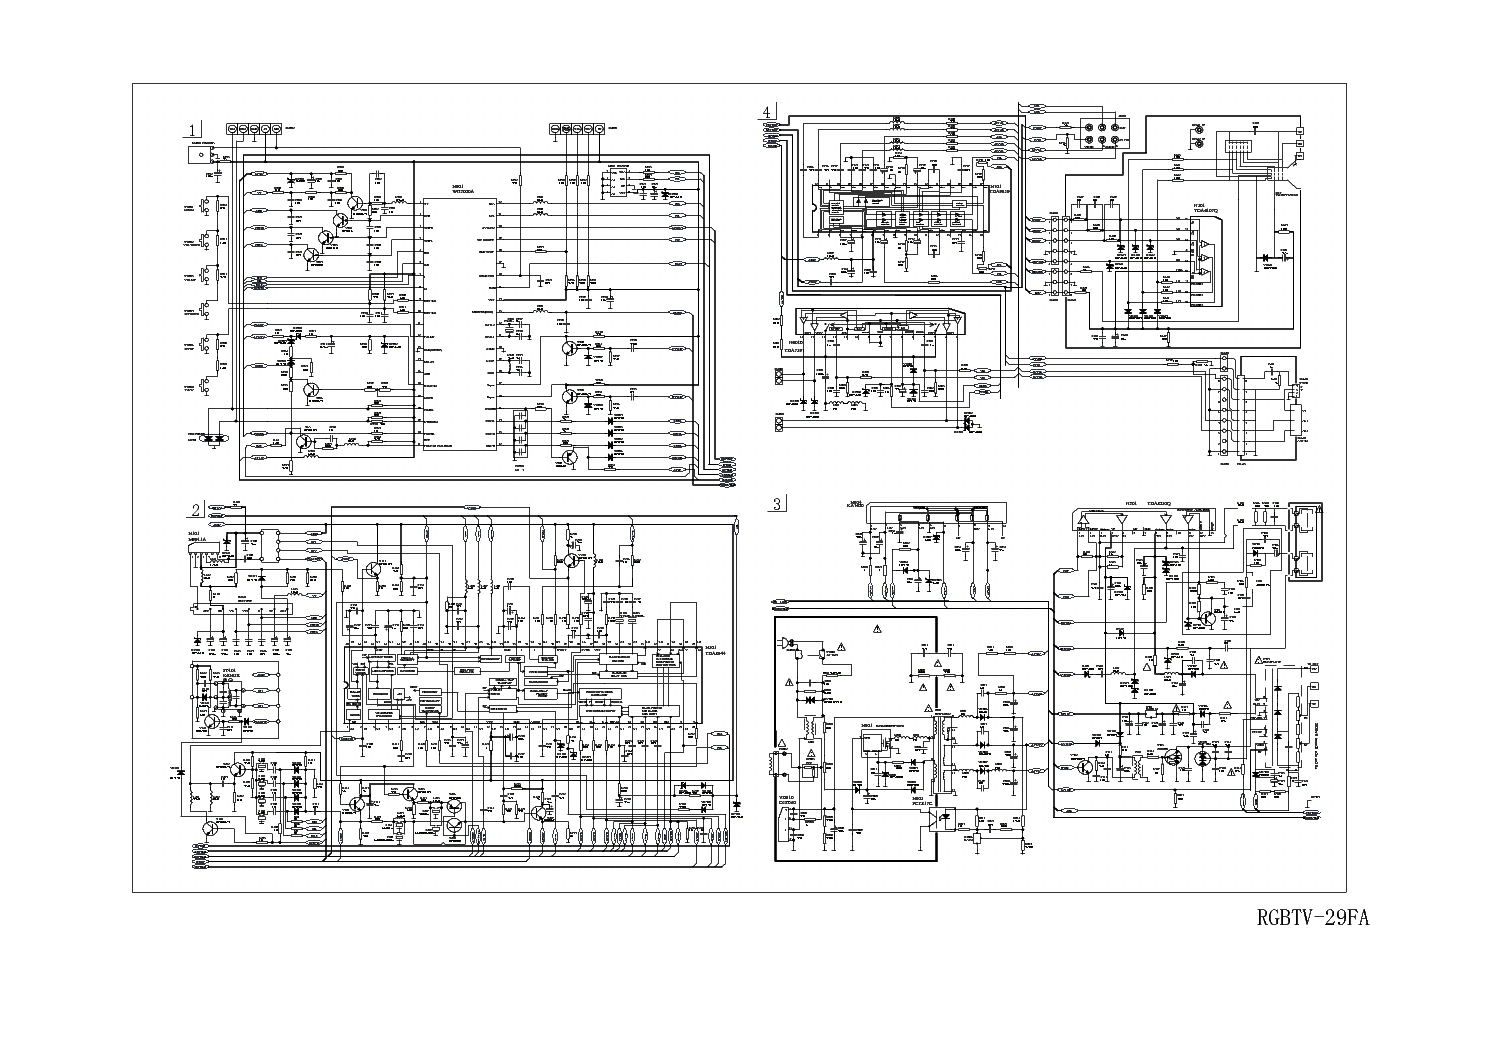 Rca Tv Wiring Diagram Schematics Fm Antenna Amplifier Circuit Board Content Resource Of U2022 Samsung